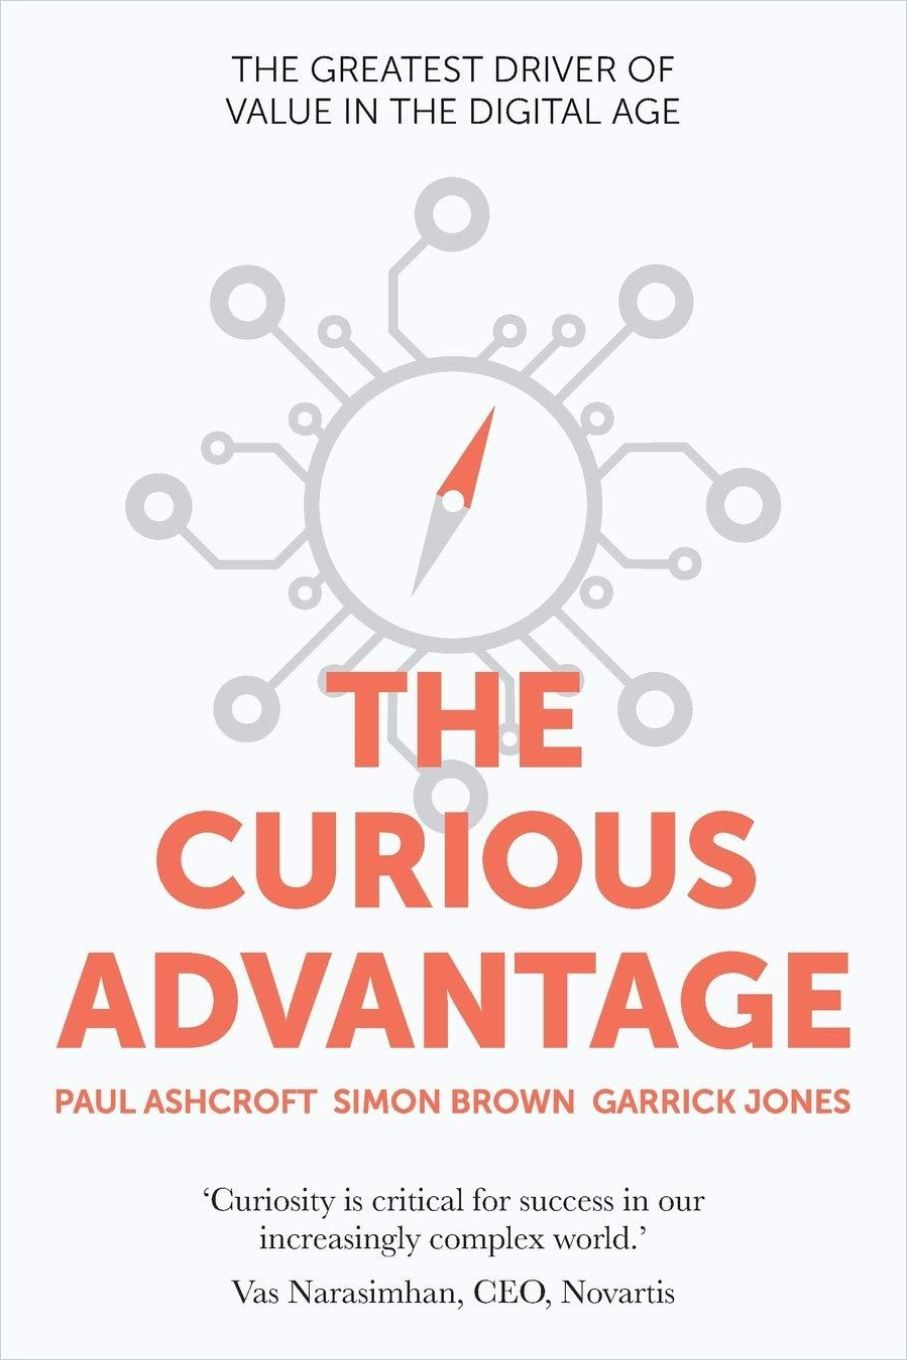 Image of: The Curious Advantage